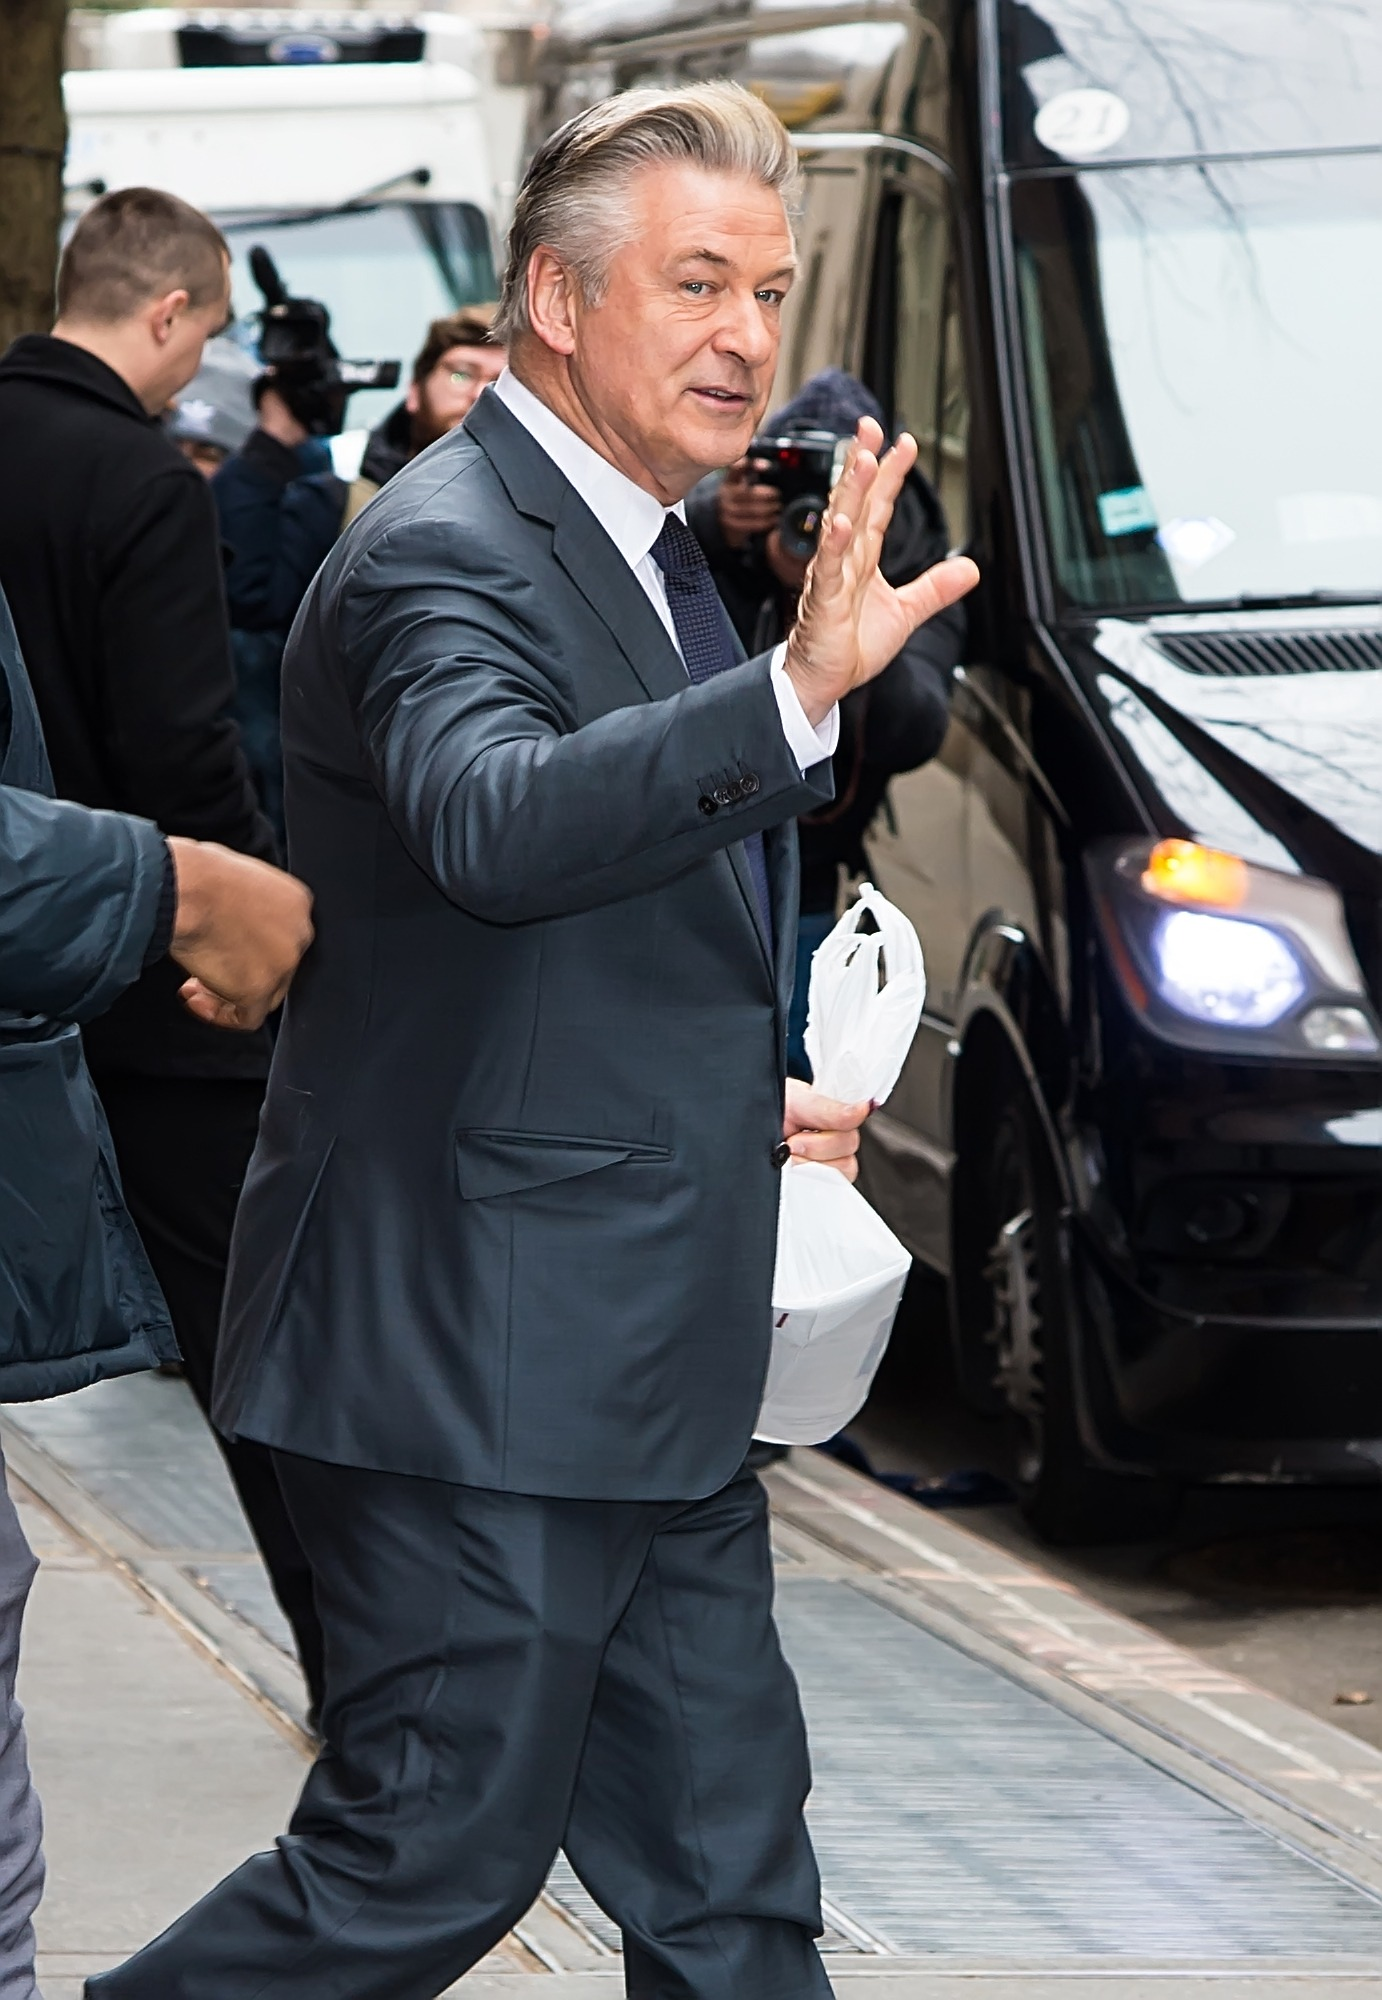 Will Alec Baldwin Face Charges?